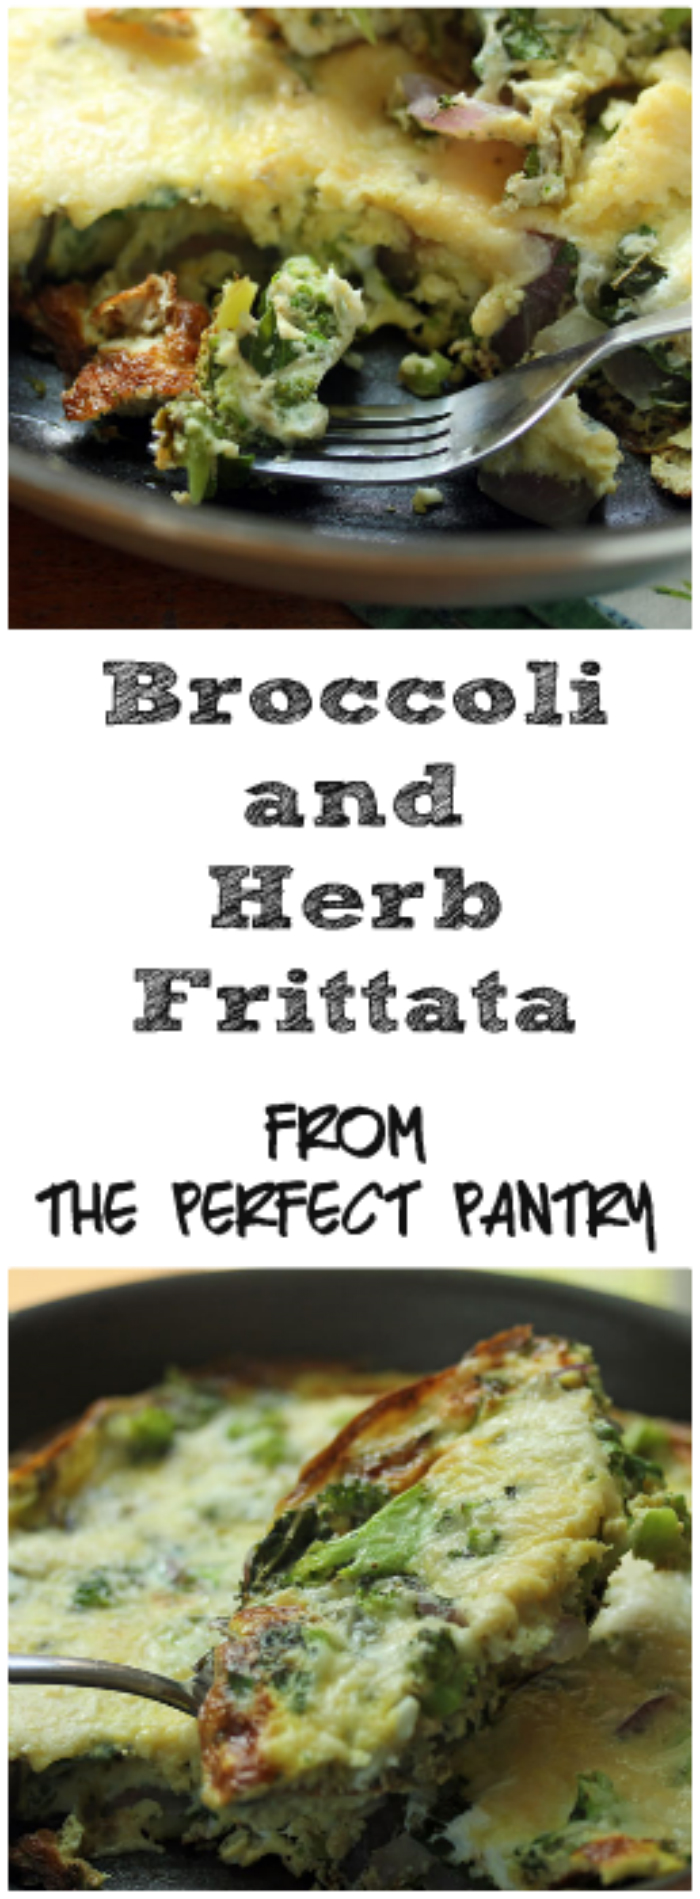 Broccoli, herbs, eggs and cheese: frittatas are the easiest go-to weeknight dinner.